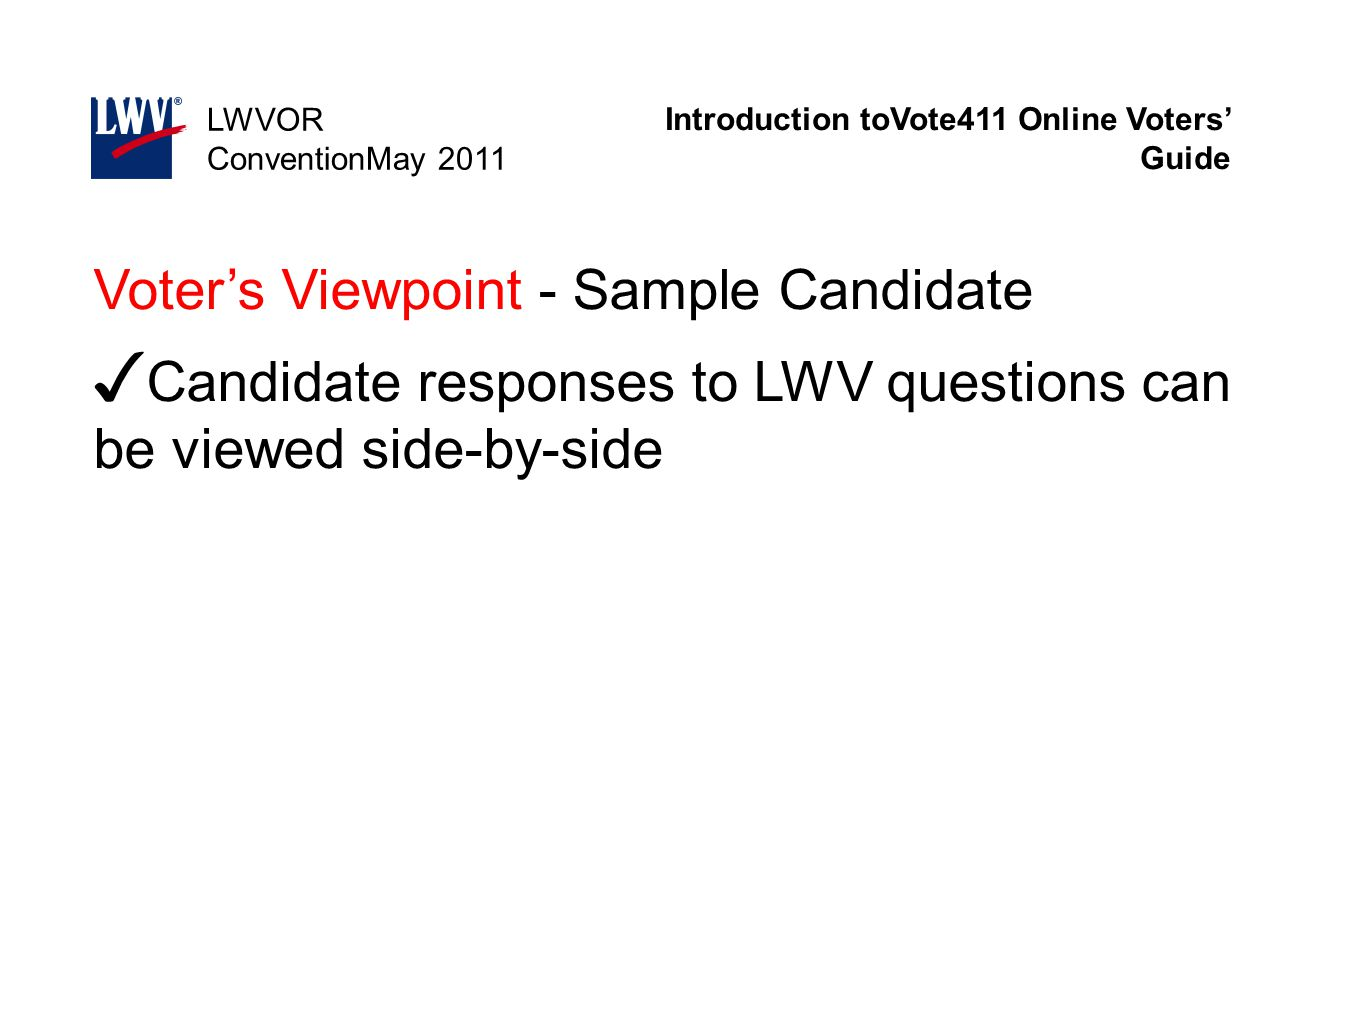 Introduction toVote411 Online Voters' Guide LWVOR ConventionMay 2011 Voter's Viewpoint - Sample Candidate ✓ Candidate responses to LWV questions can b